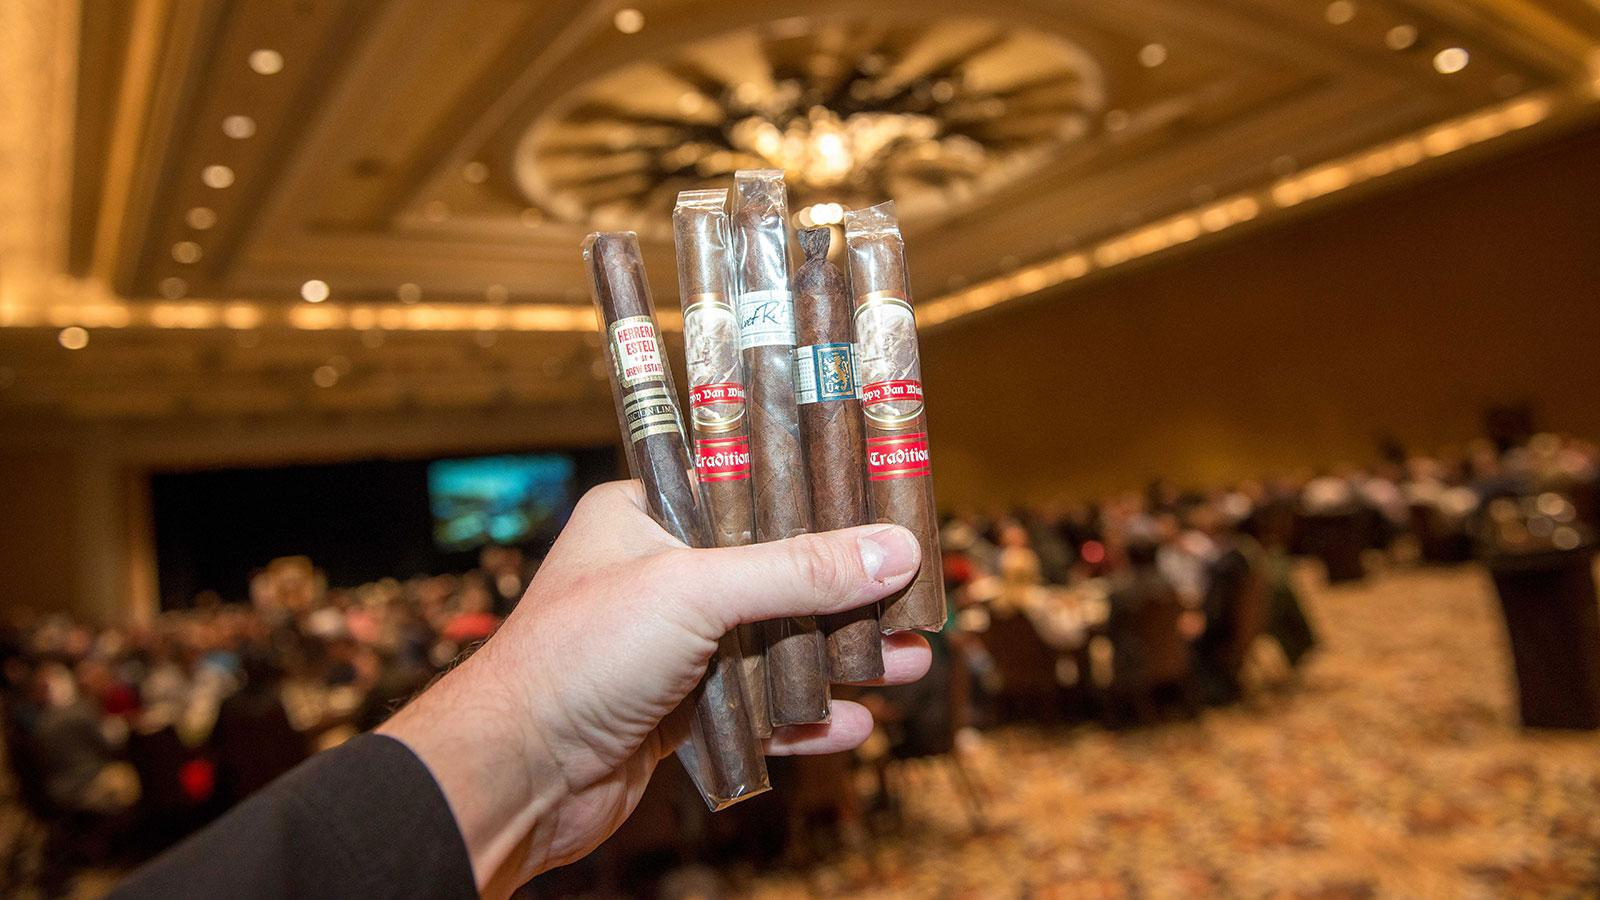 The rare cigars included, from left, a Herrera Esteli Lancero Edicion Limitada, a Pappy Van Winkle Tradition Lonsdale, Liga Privada Único Serie Velvet Rat, Liga Privada Único Serie Dirty Rat and a Pappy Van Winkle Tradition Corona Extra.